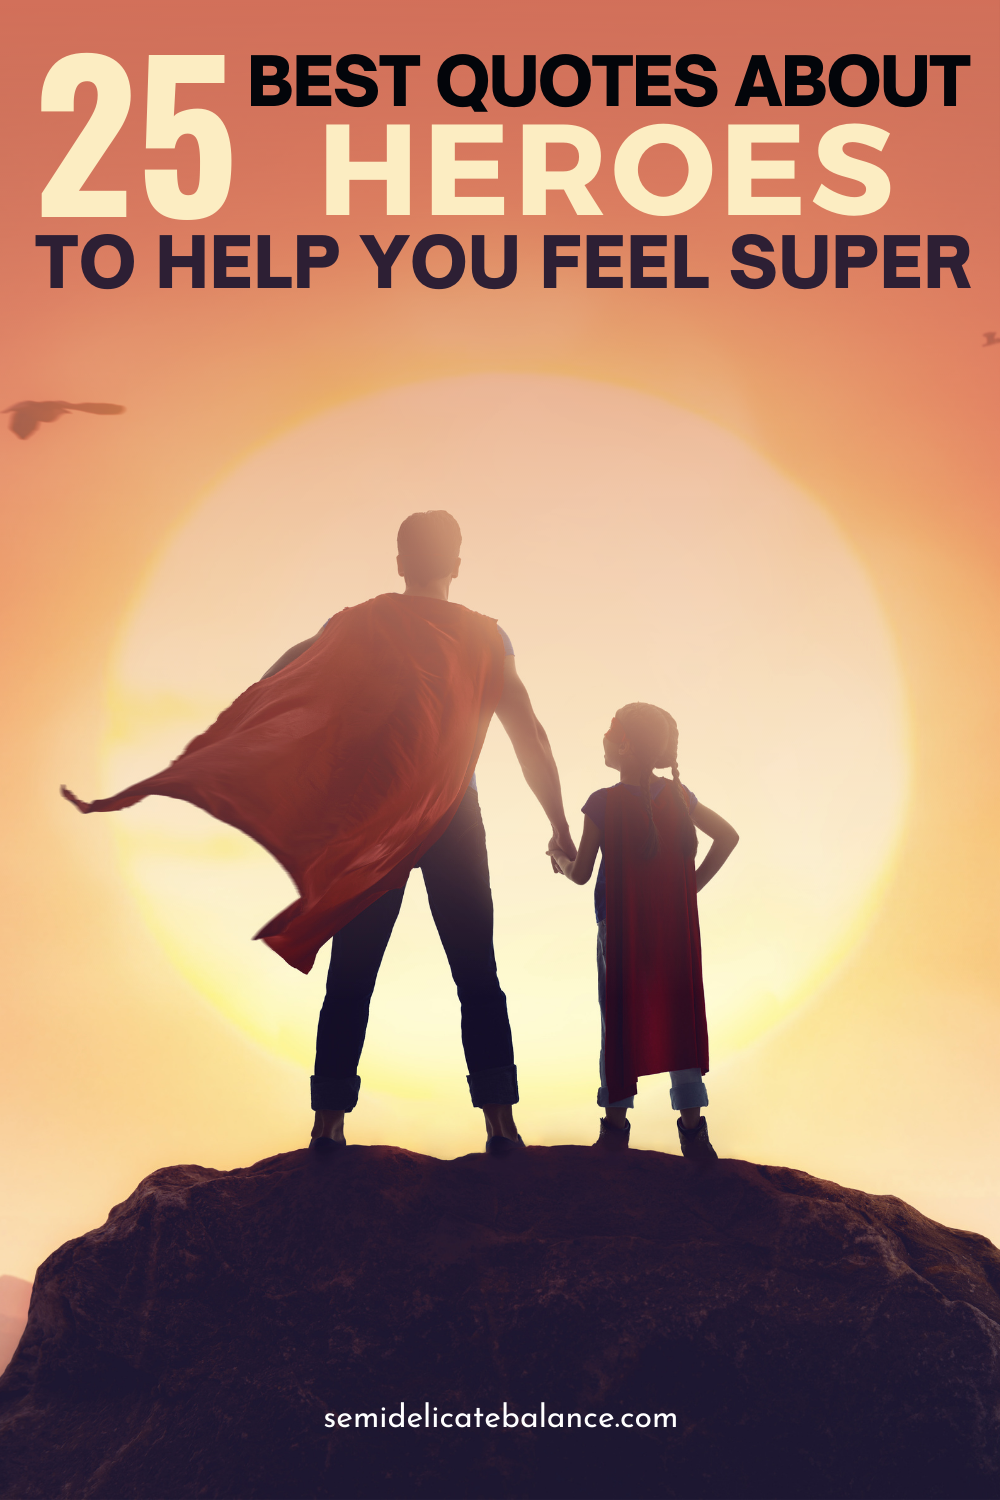 25 Best Quotes About Heroes To Help Everyone Feel Super, Inspirational heroism quotes